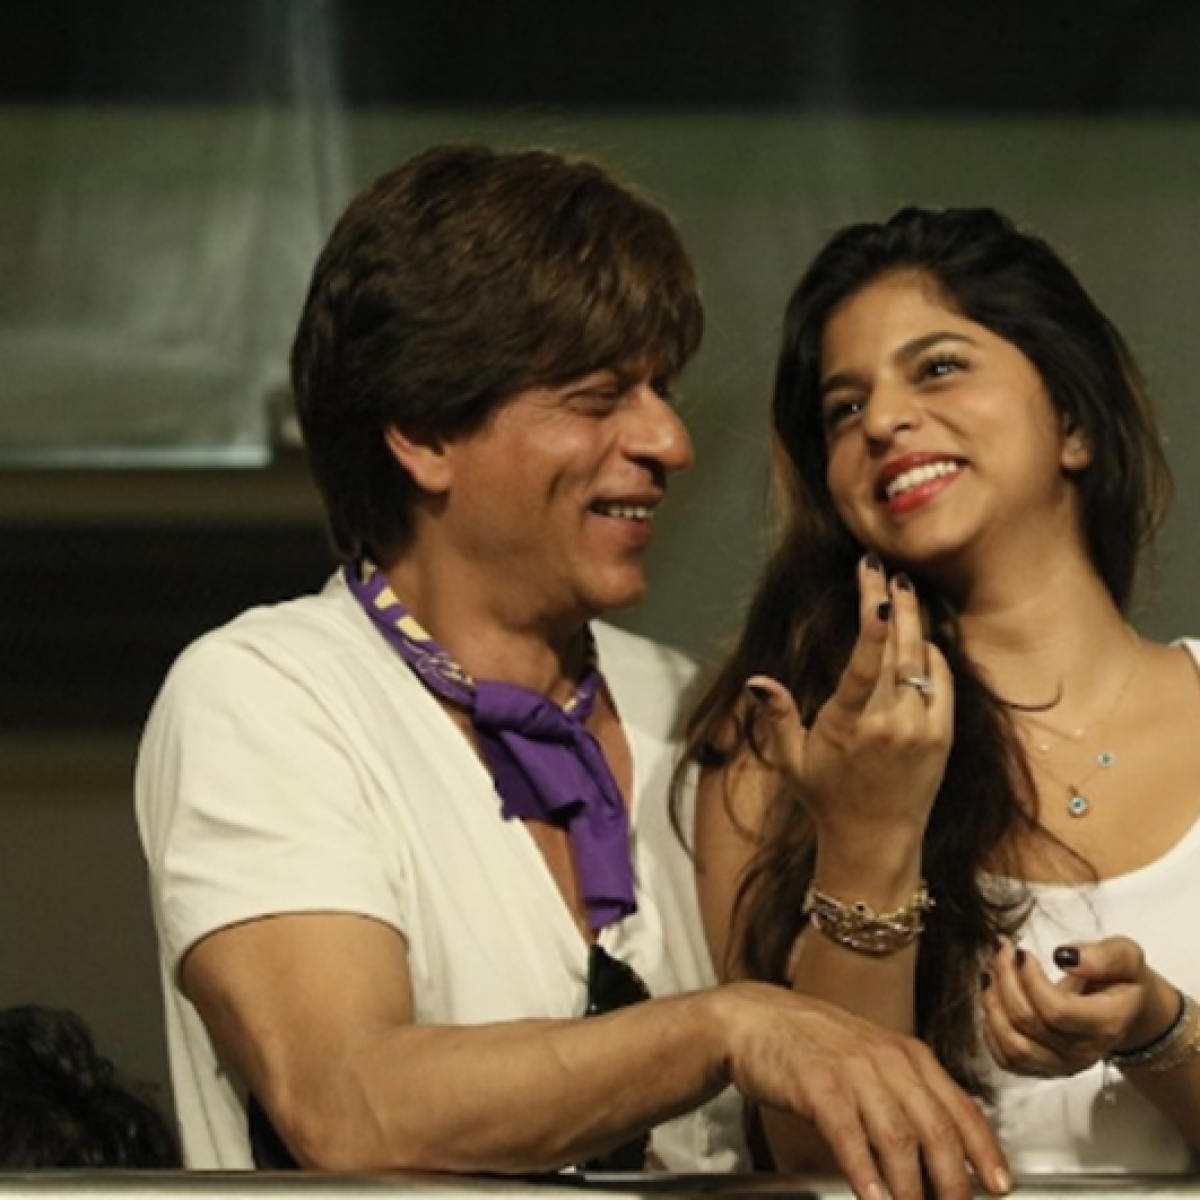 'Monthly payment Rs 1 lakh+ hai': Shah Rukh Khan's fan sends marriage proposal to Suhana; gets trolled